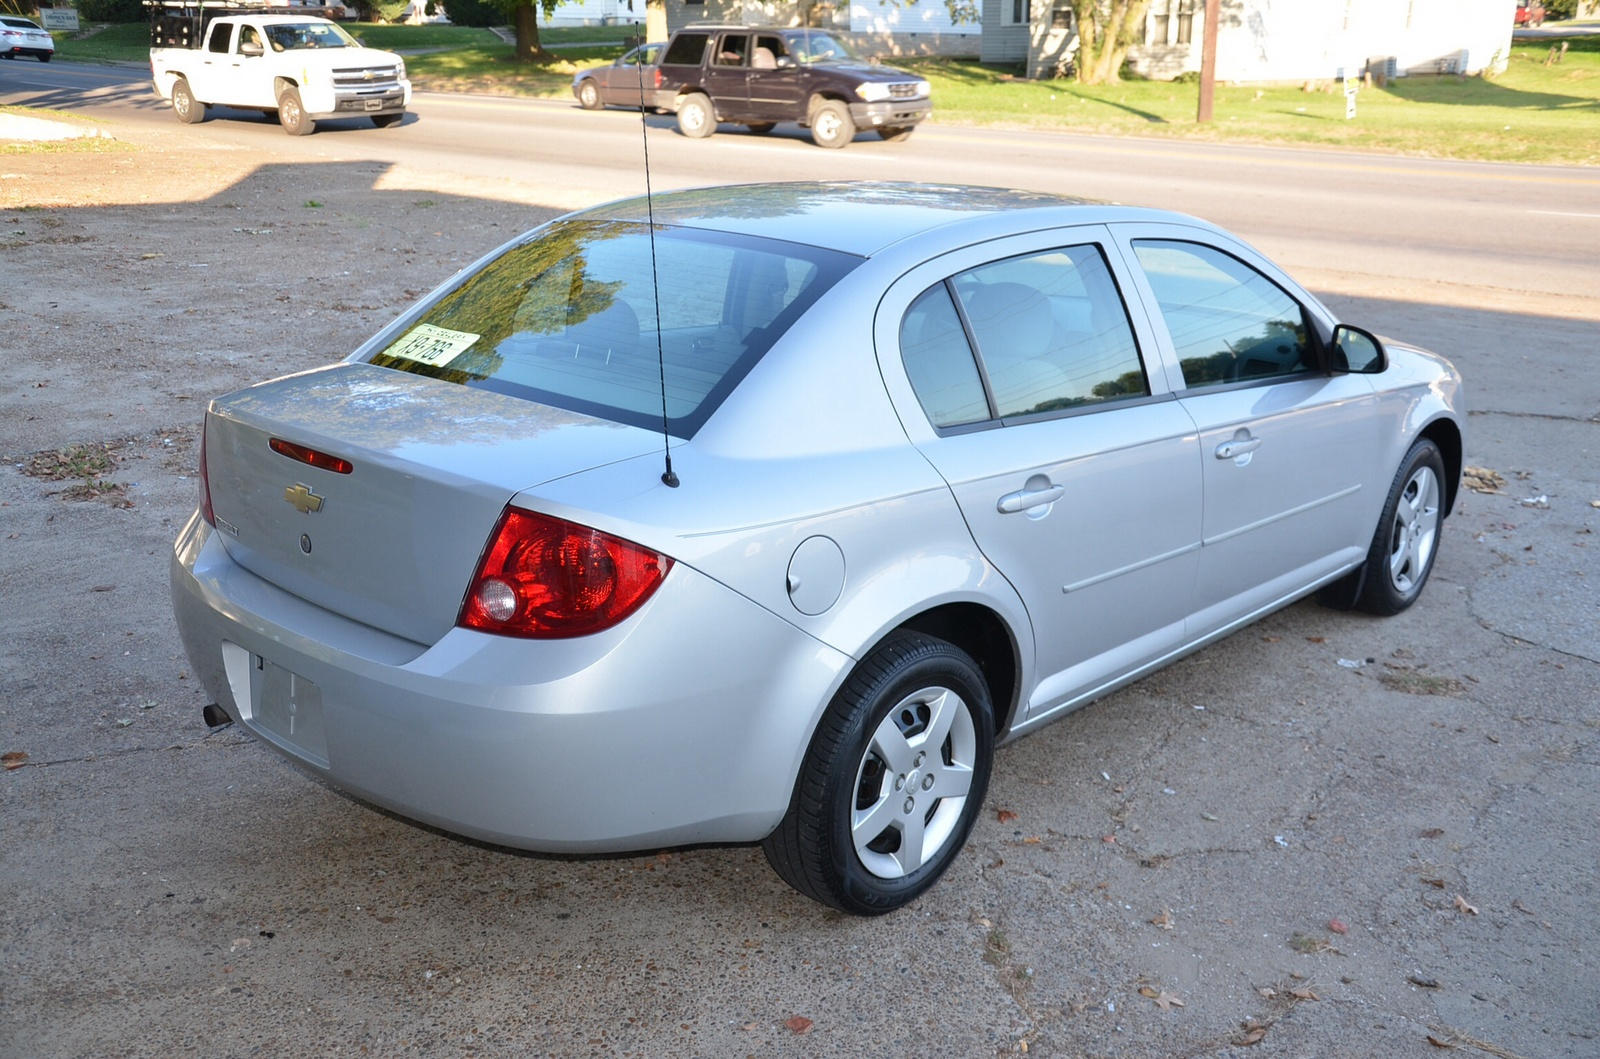 Chevrolet Cobalt 2.4 2011 photo - 12